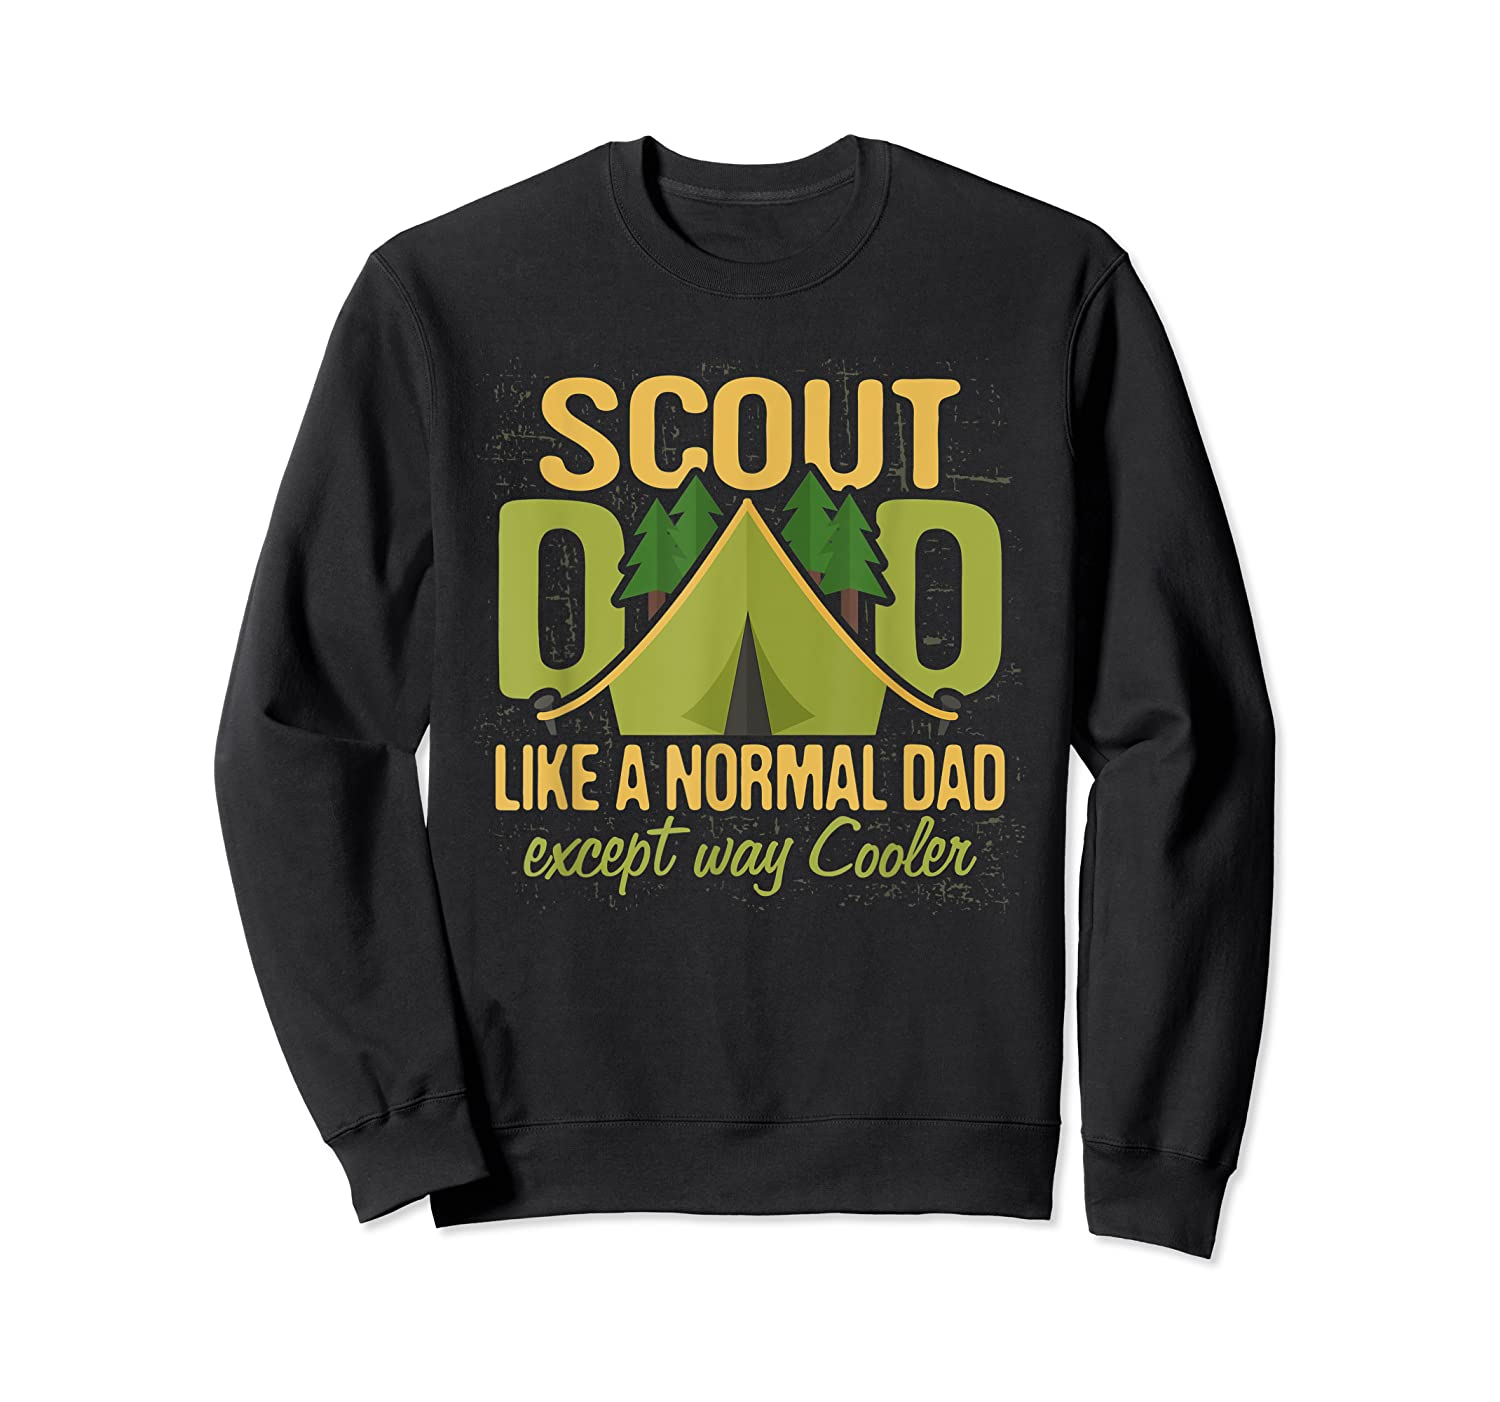 Scout Dad Cub Leader Boy Camping Scouting Gift Shirts Crewneck Sweater